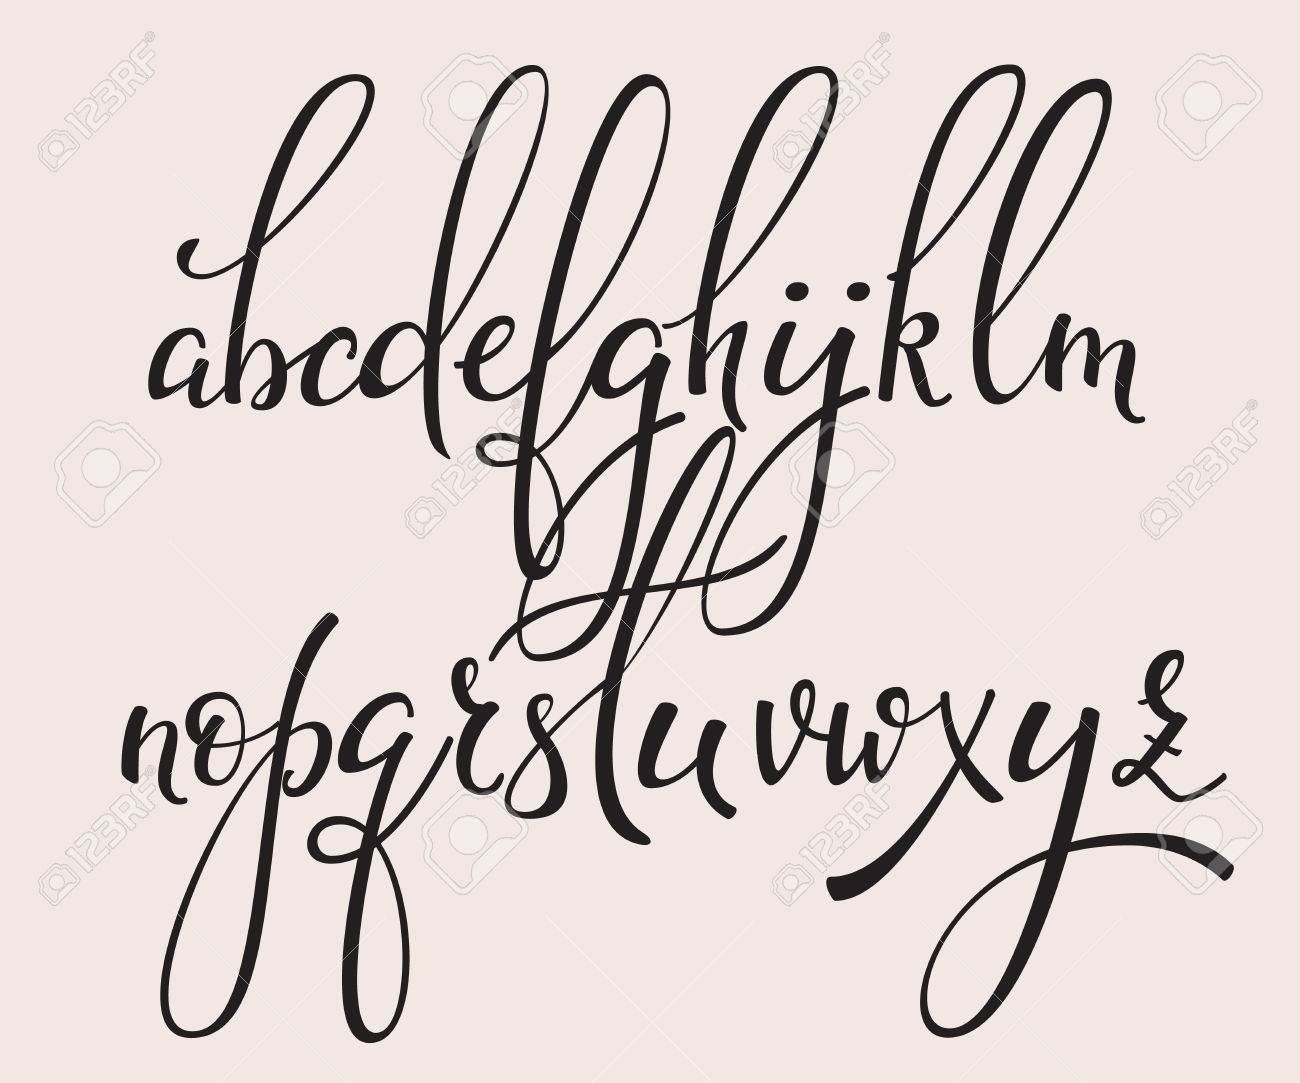 handwritten brush style modern calligraphy cursive font with